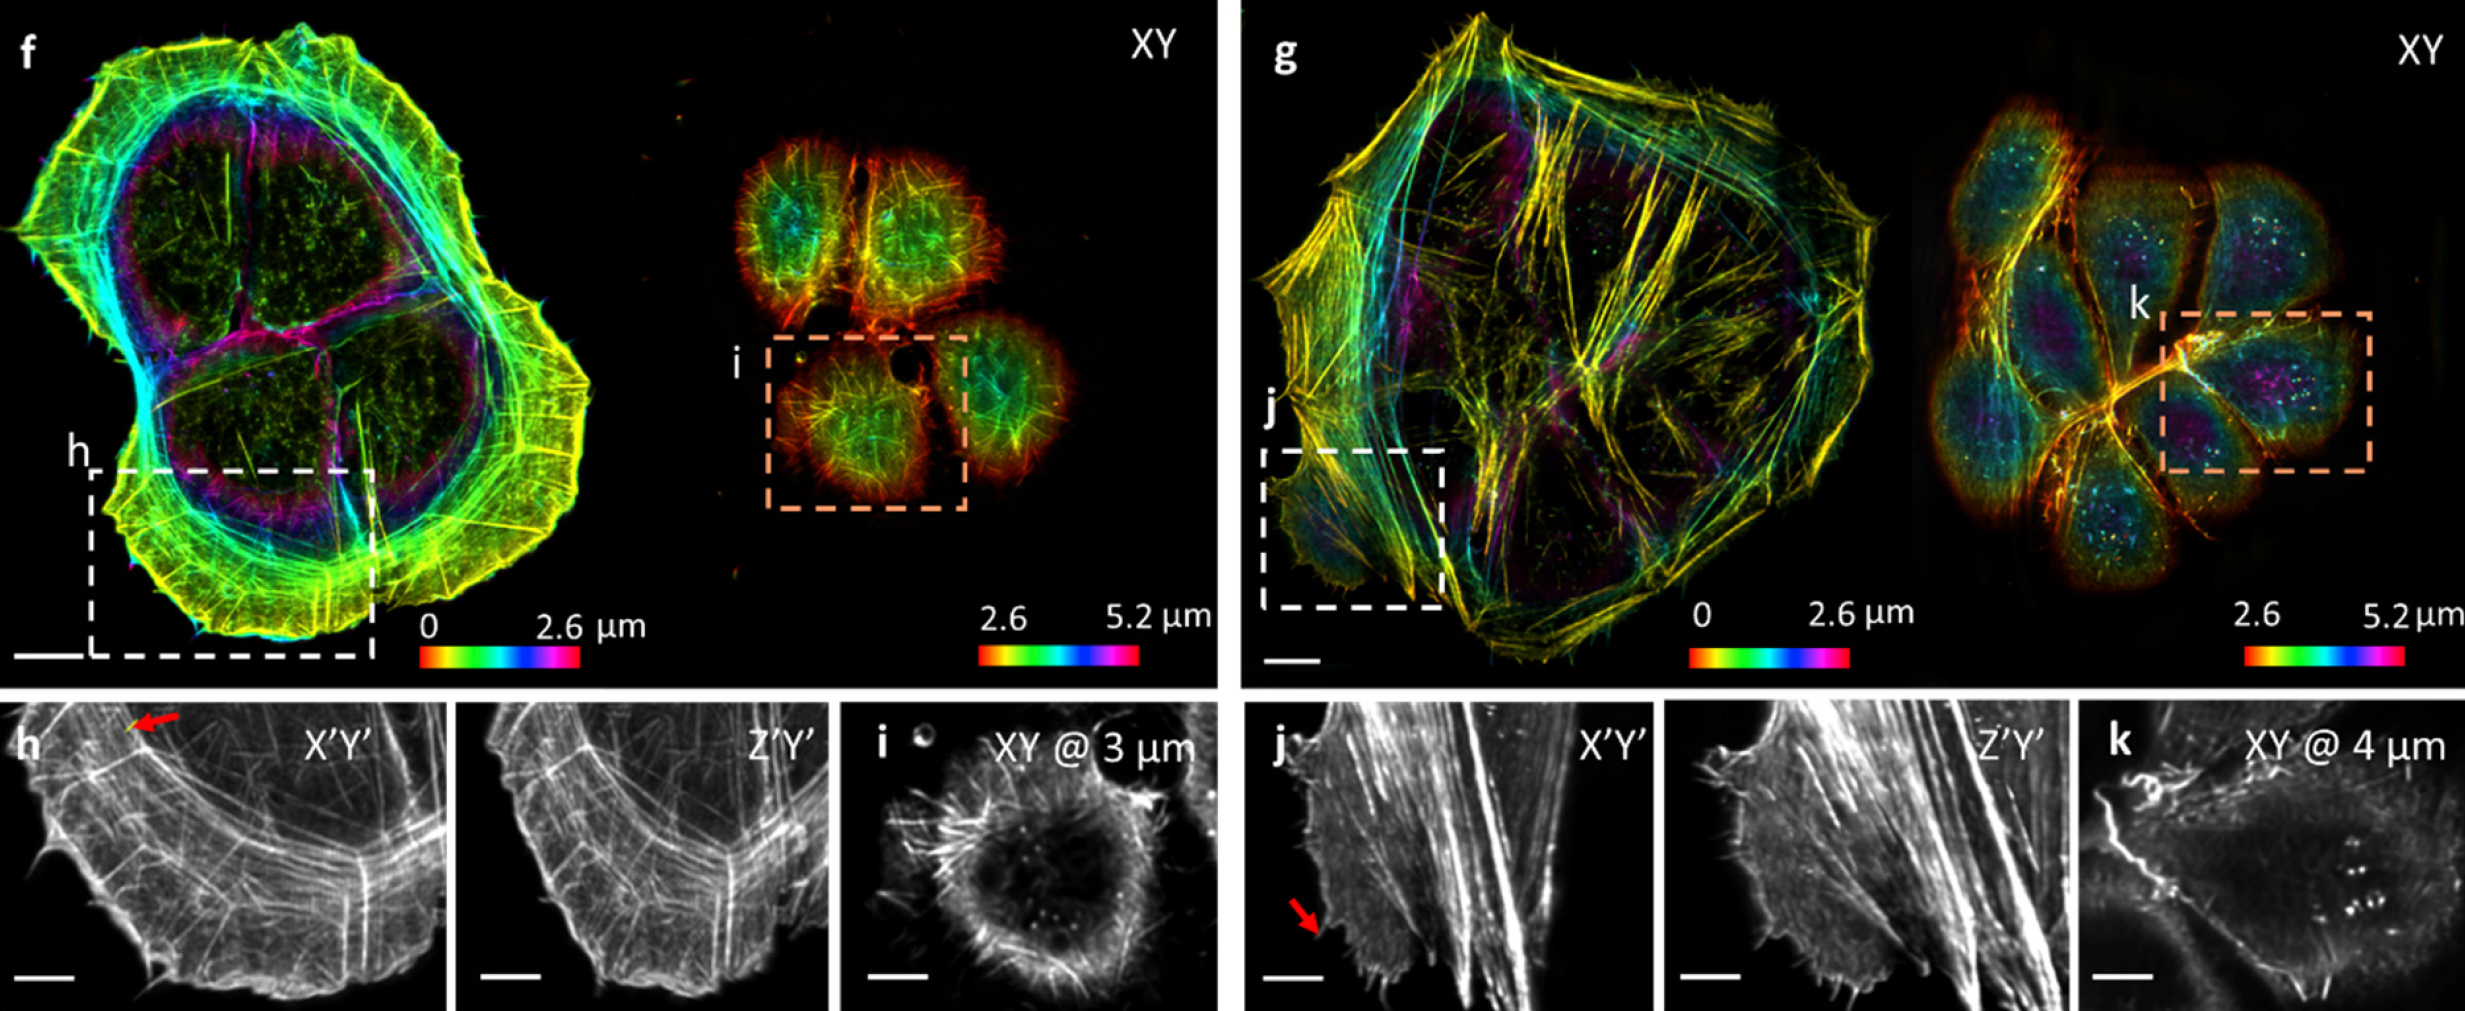 Multiple images, both in color and black and white, of cellular structures.